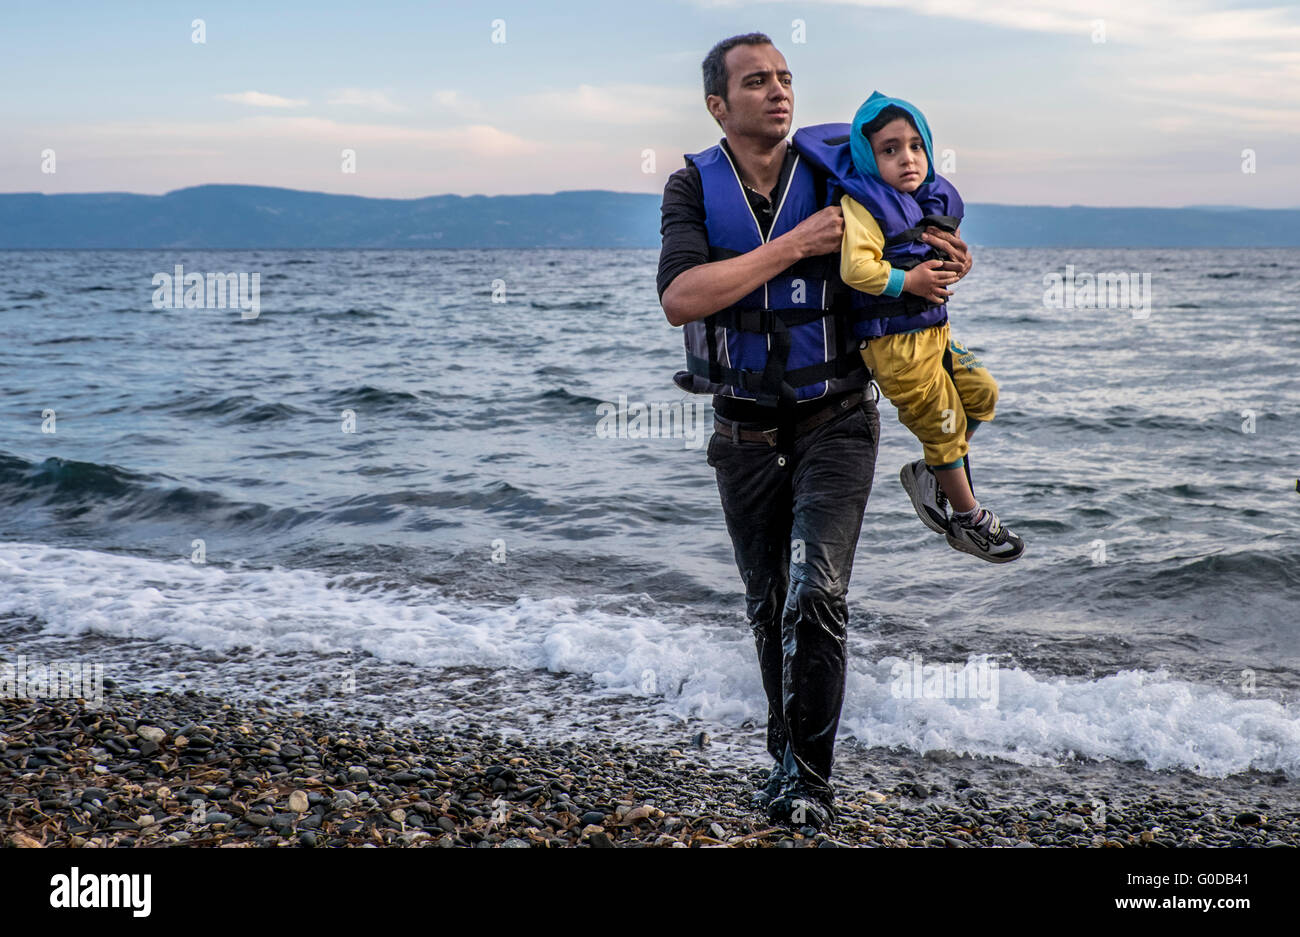 Syrian father and son come ashore on the Greek island of Lesvos after crossing from Turkey in a raft Stock Photo